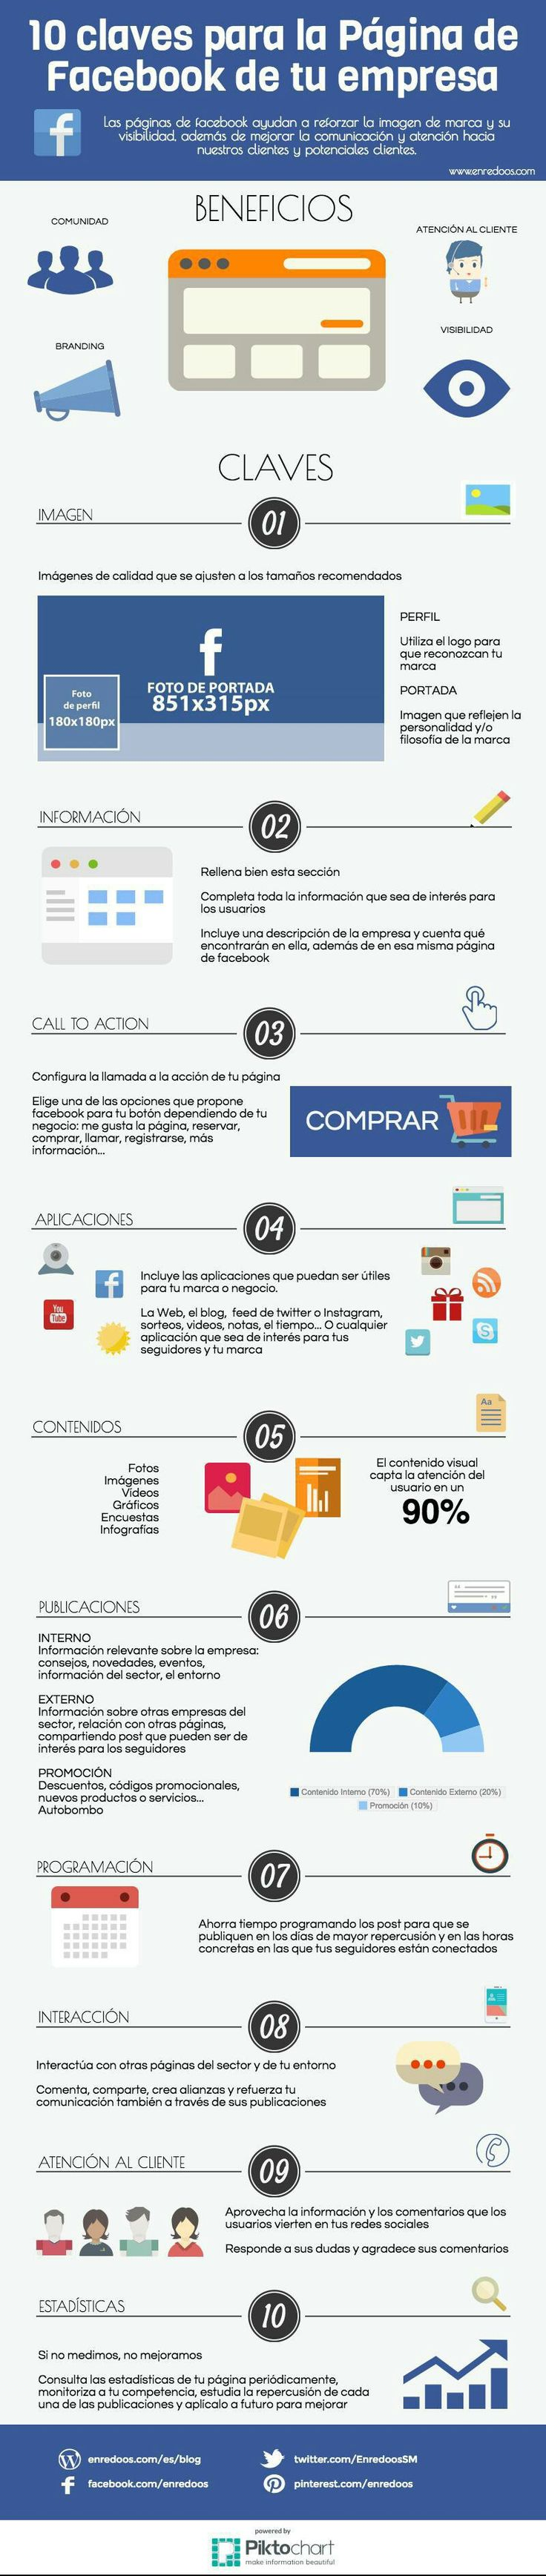 10 claves para la página de Facebook de tu empresa... #SocialMediaOP #SocialMedia #Marketing